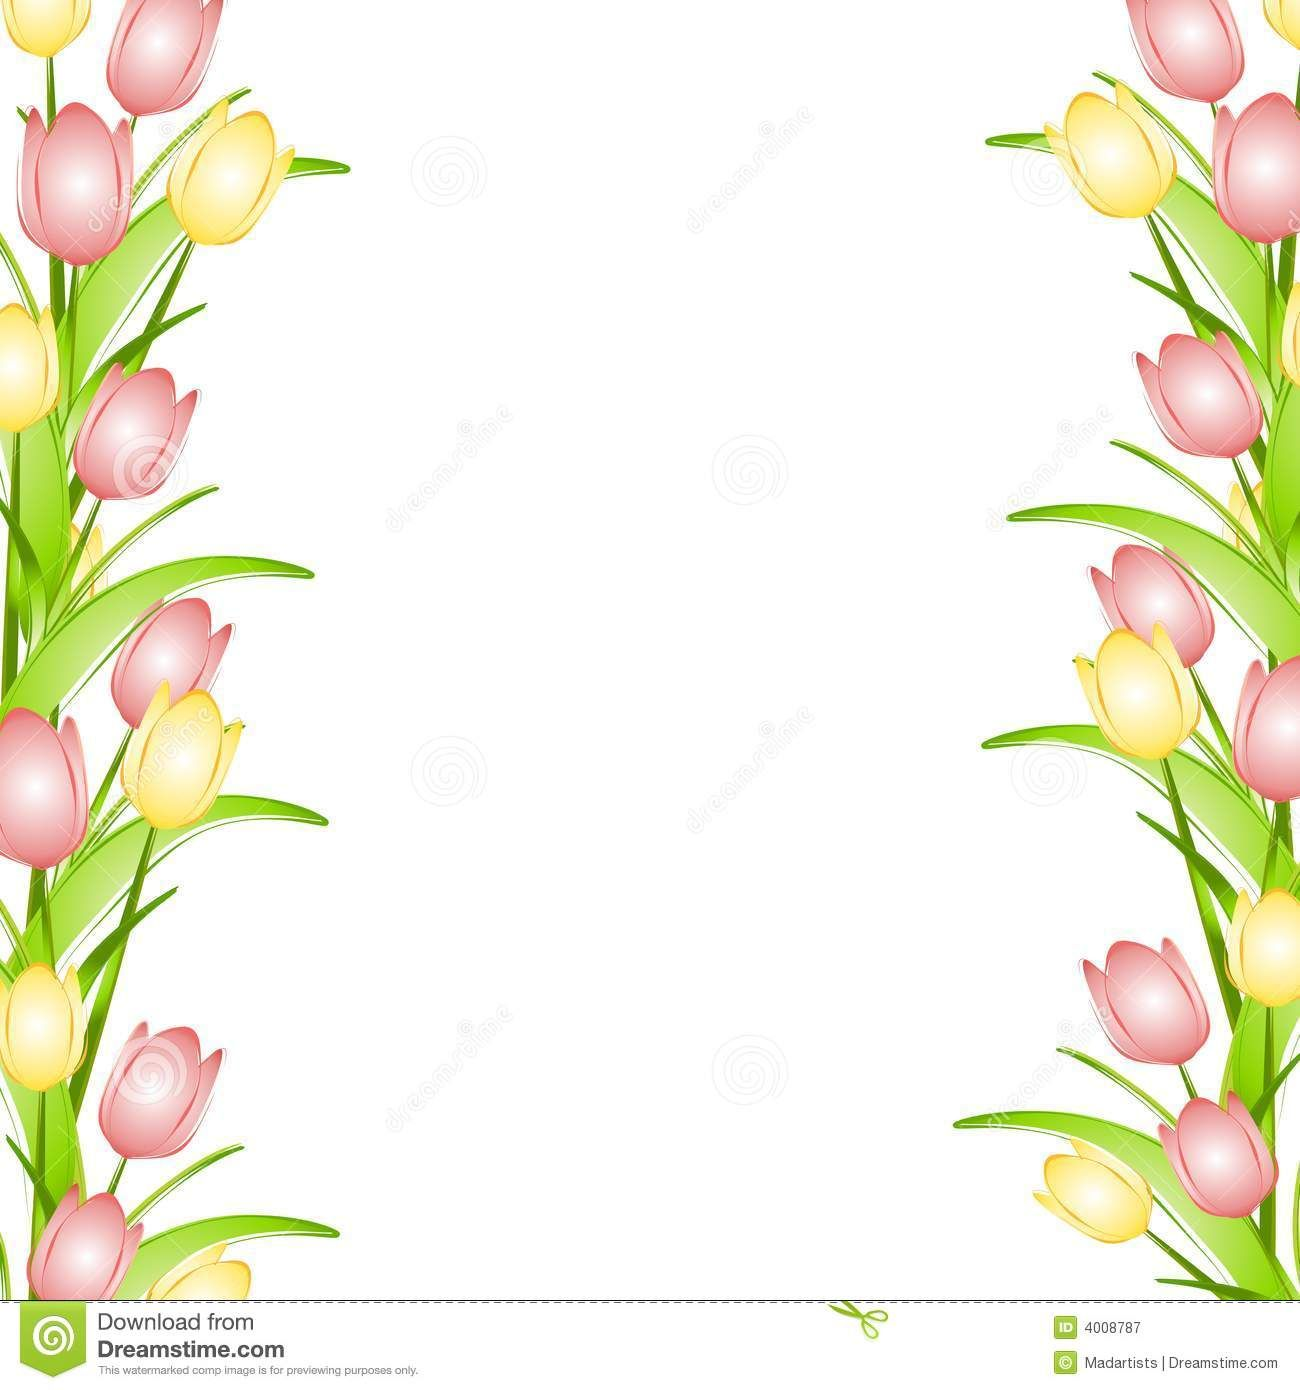 Rustic springtime clipart borders clip freeuse stock Pink Flower Border Clip Art Pink Yellow Spring Tulips Flower ... clip freeuse stock